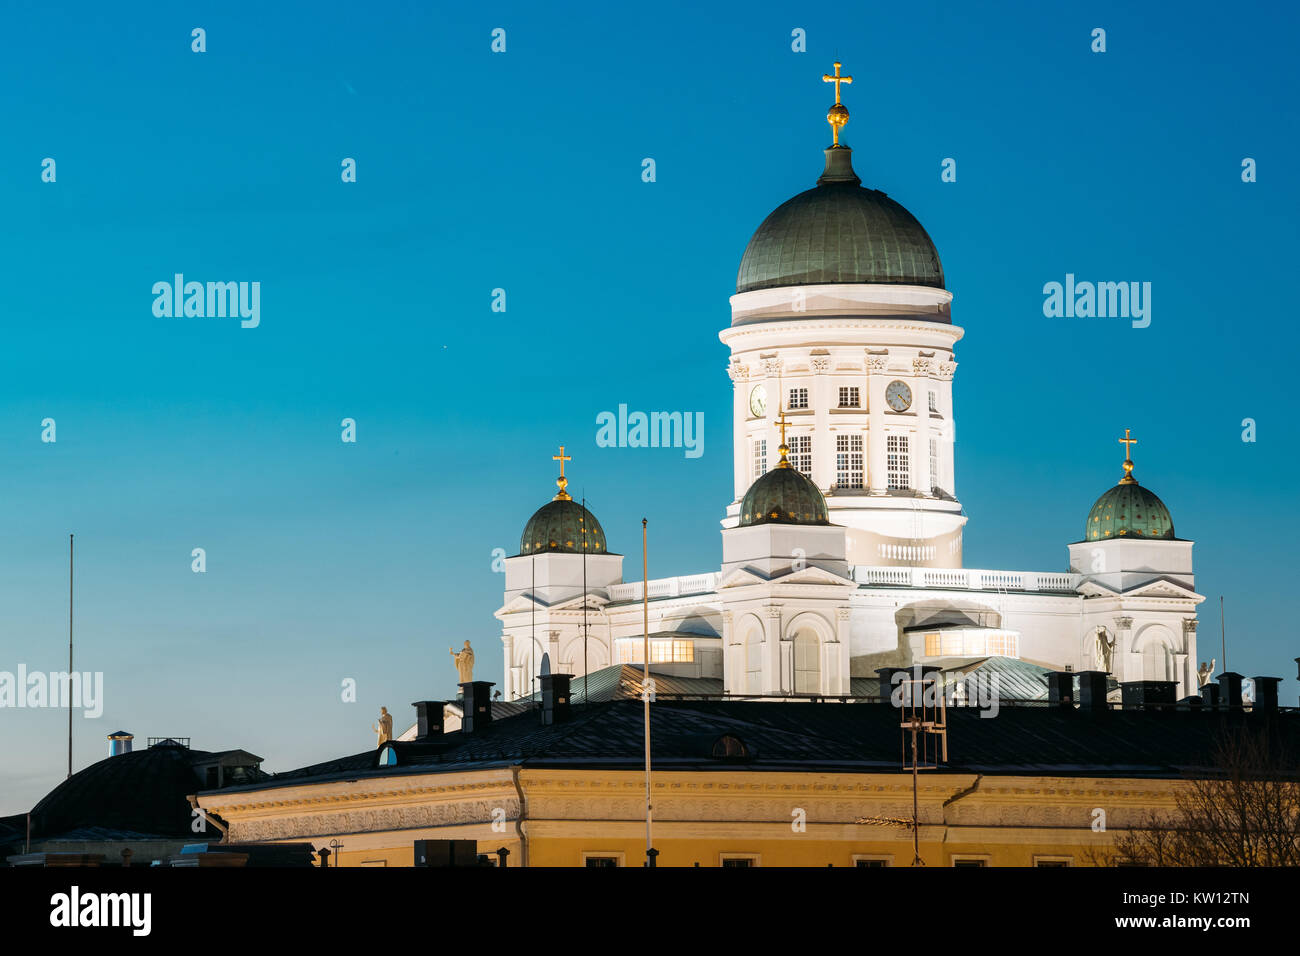 Helsinki, Finland. Famous Landmark Is Lutheran Cathedral In Night Evening Lighting. Stock Photo